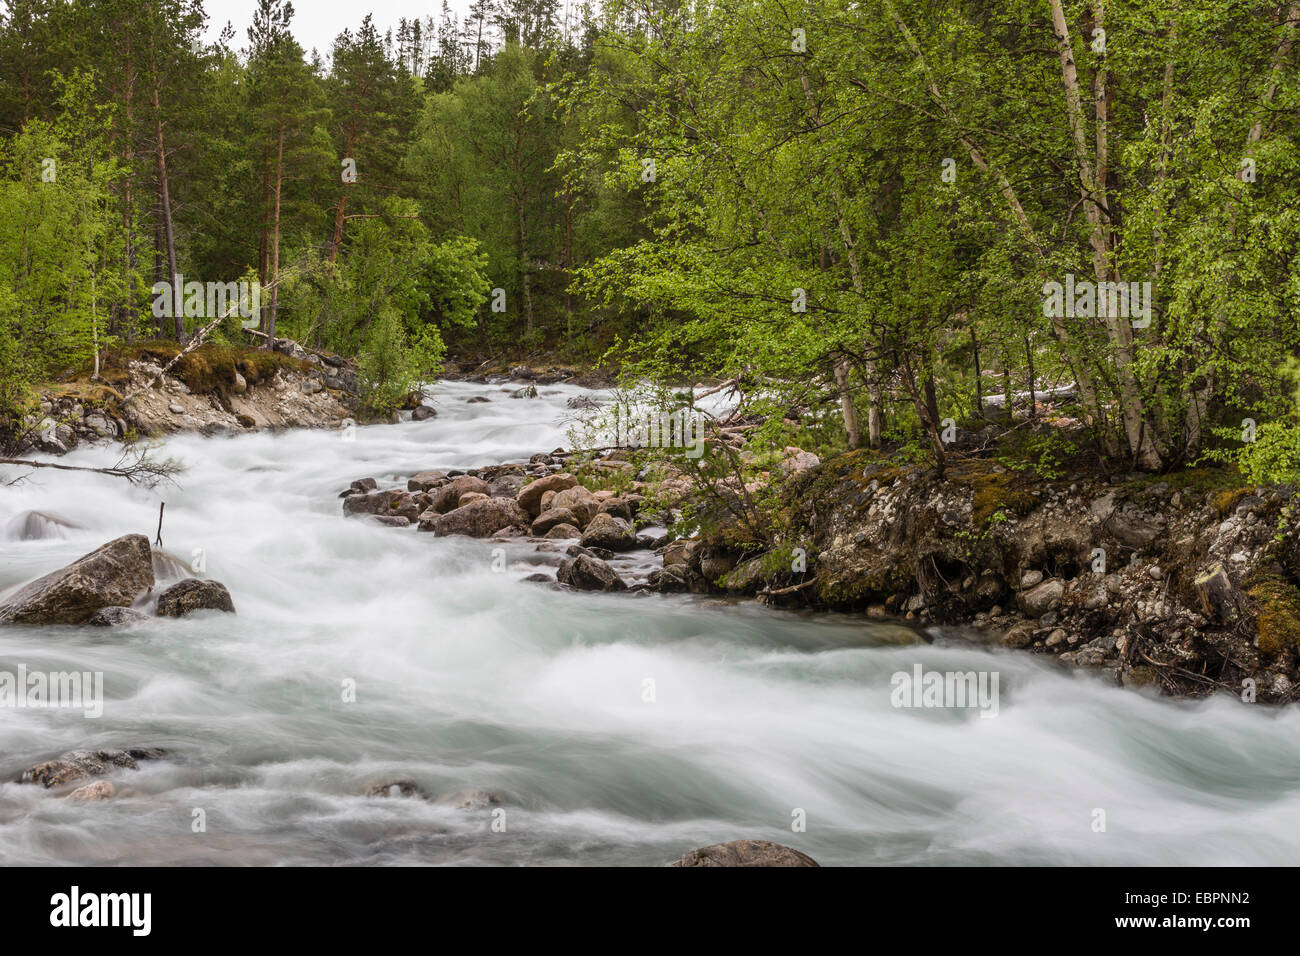 Slow motion blur detail of a raging river in Hellmebotyn, Tysfjord, Norway, Scandinavia, Europe - Stock Image